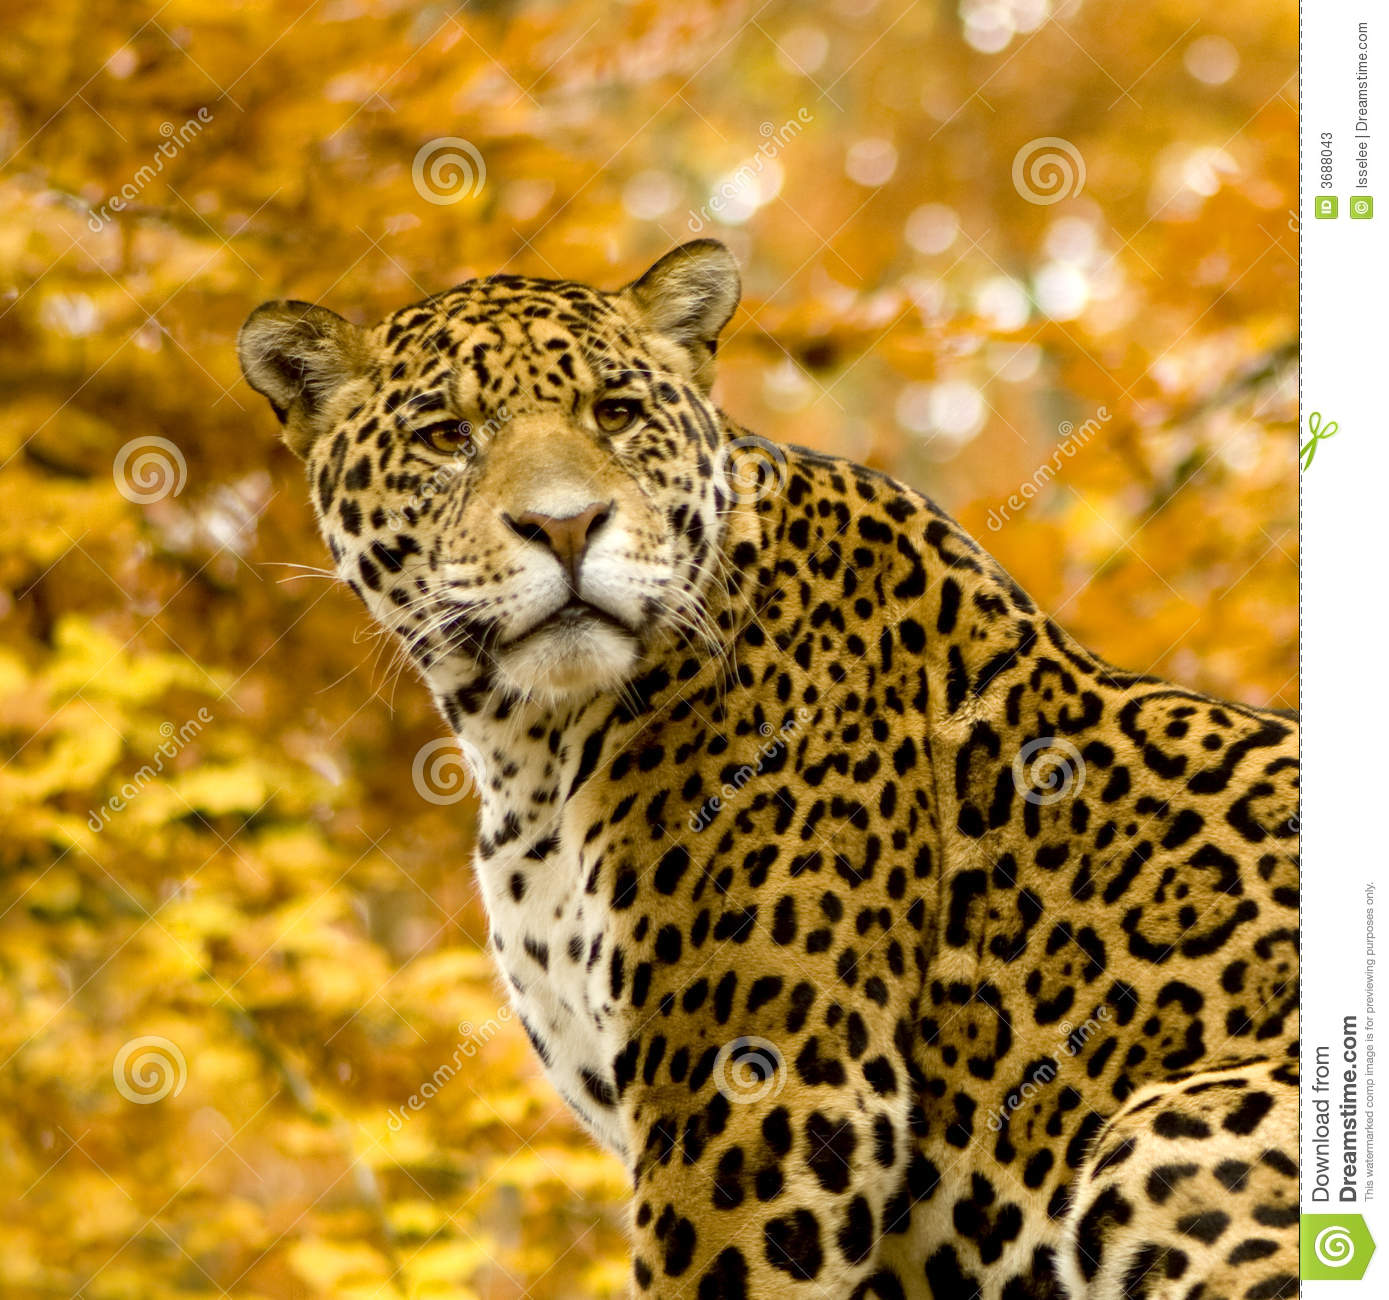 Panthera Onca Stock Images: Panthera Onca Stock Photos